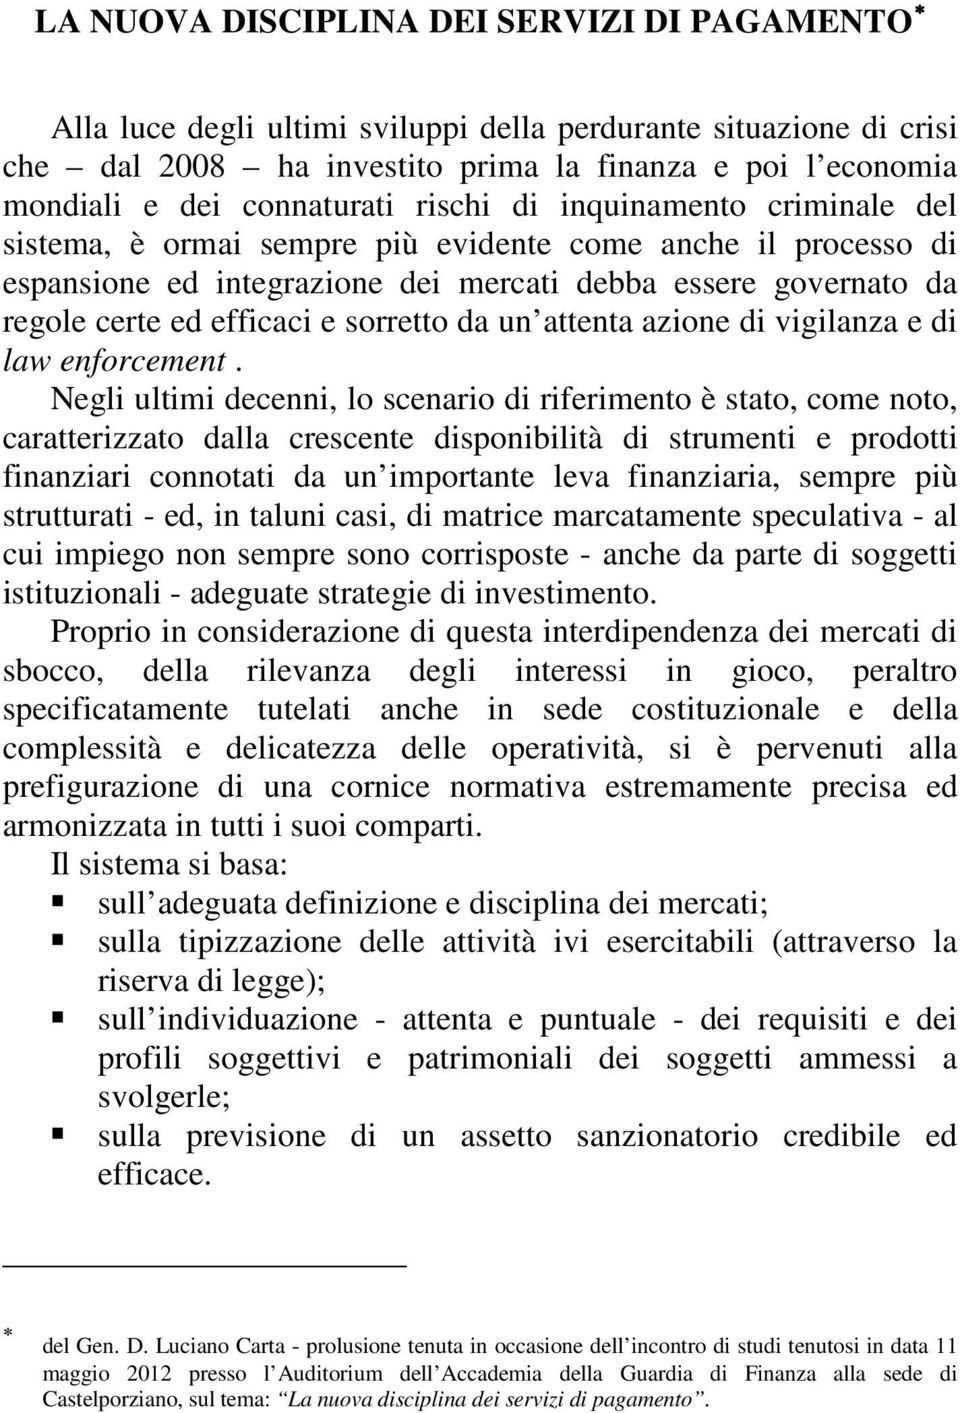 efficaci e sorretto da un attenta azione di vigilanza e di law enforcement.